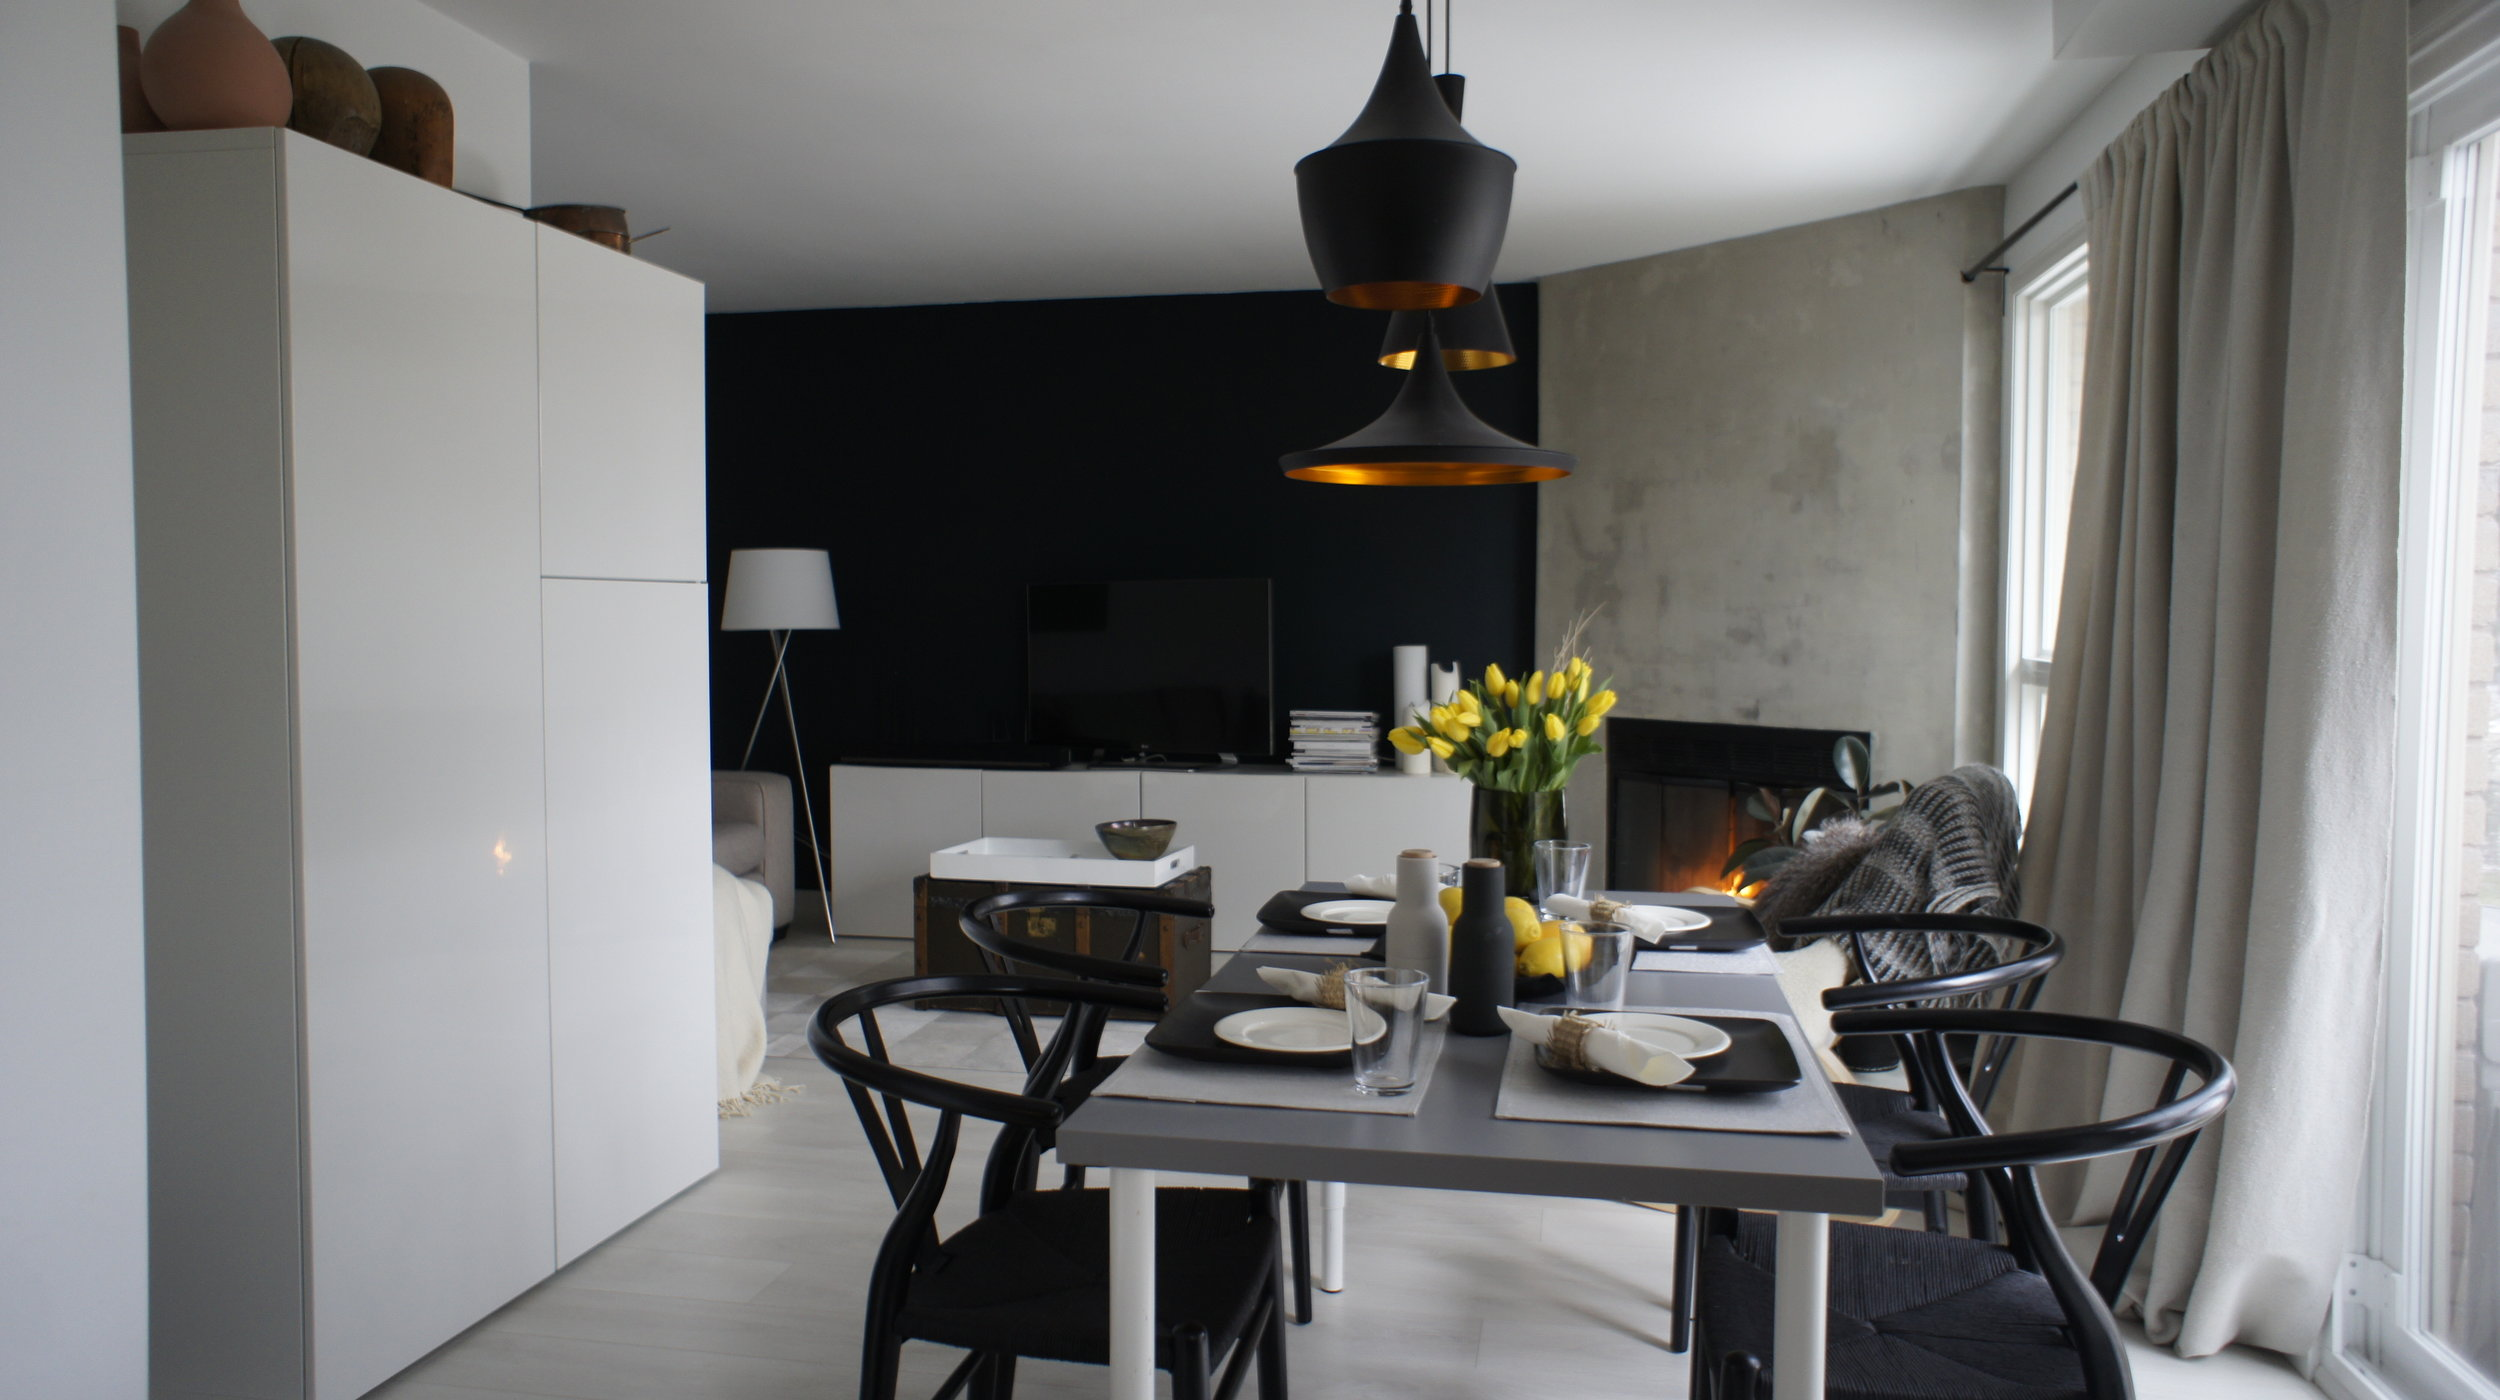 Scandinavian kitchen dining area.jpg